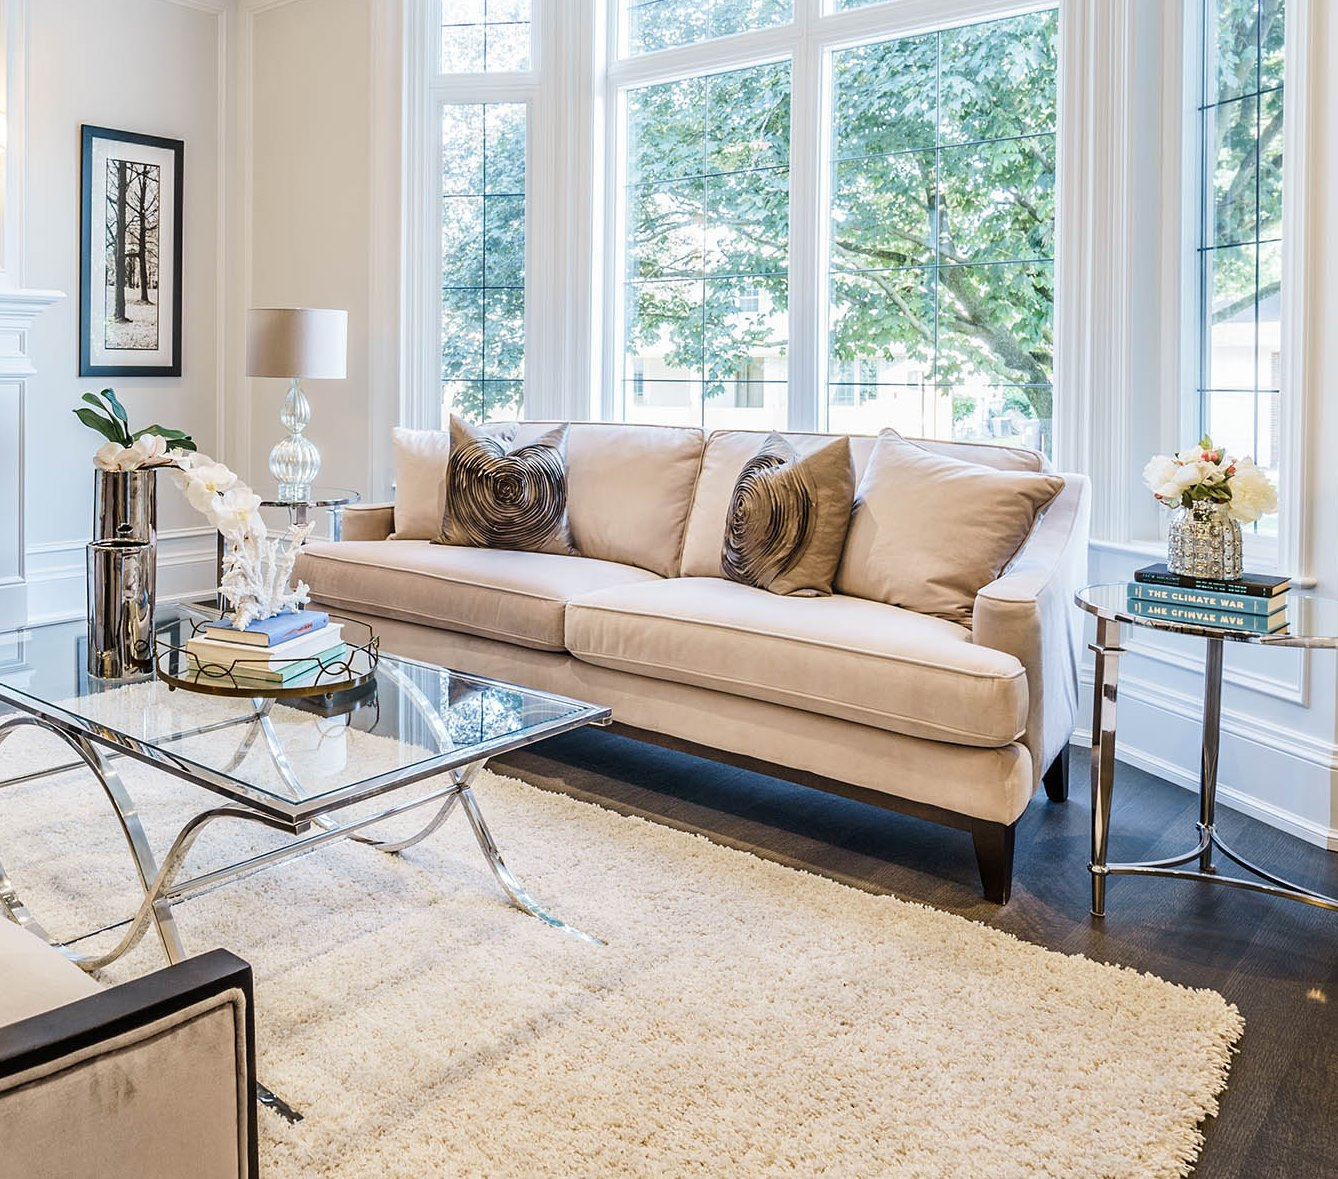 Luxury Sofas Toronto Sofa Set Rental For Home Staging By Luxury Furniture In